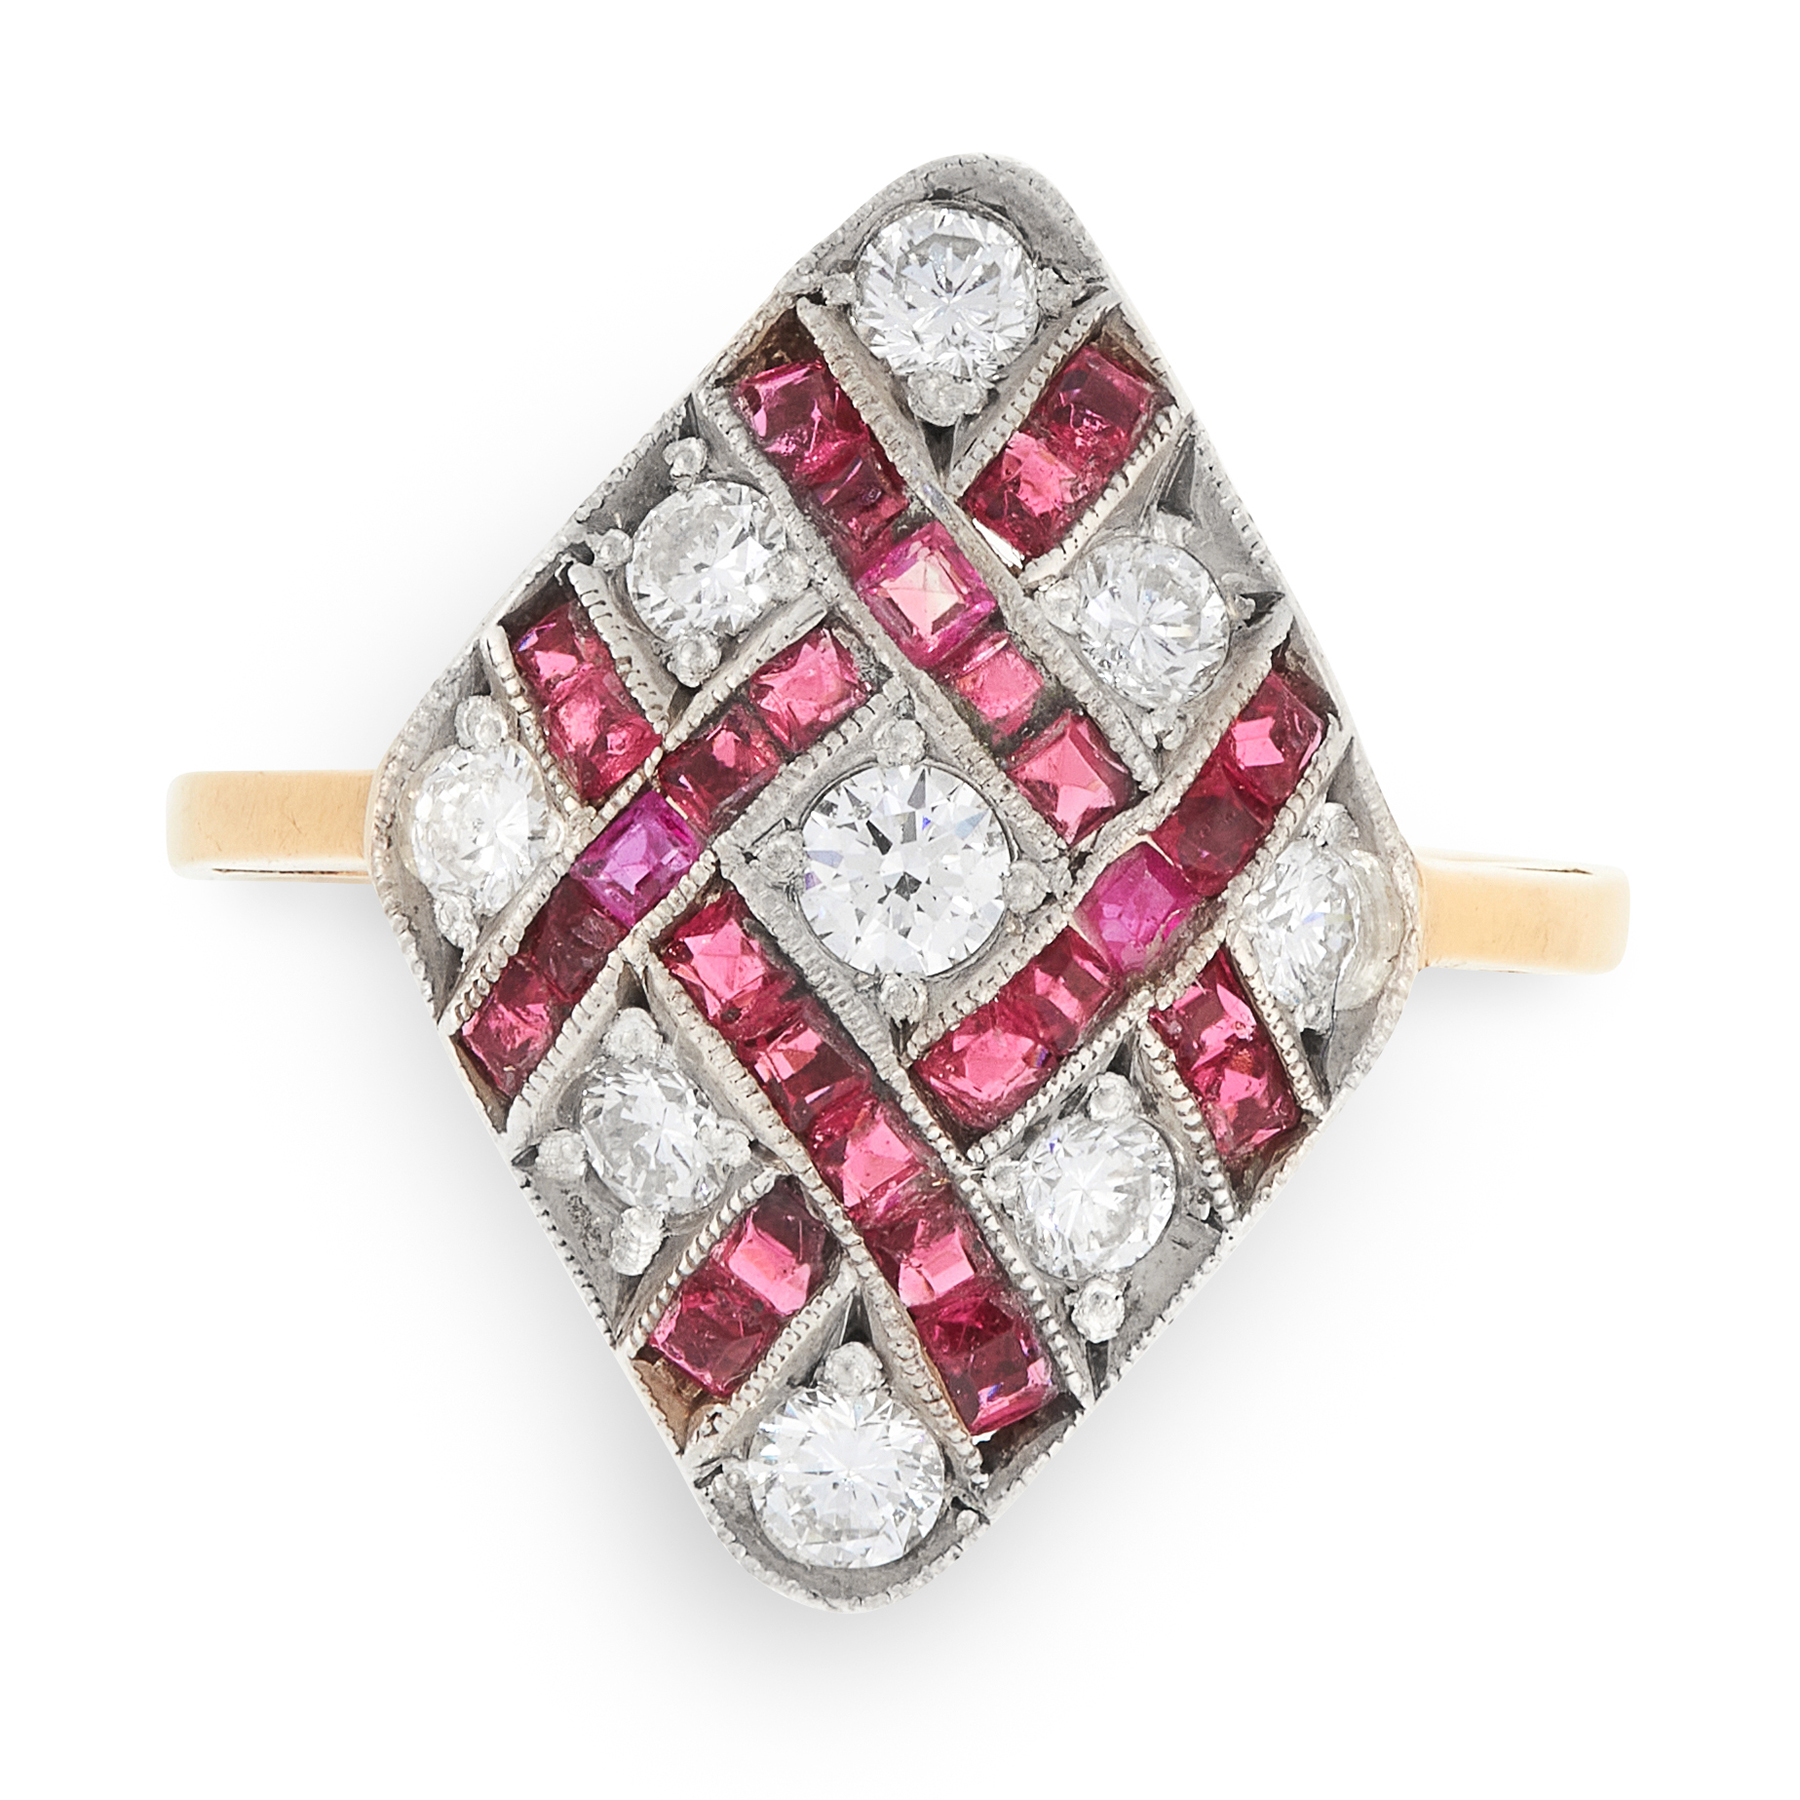 A RUBY AND DIAMOND DRESS RING in 18ct yellow gold, the kite shaped face set with alternating round